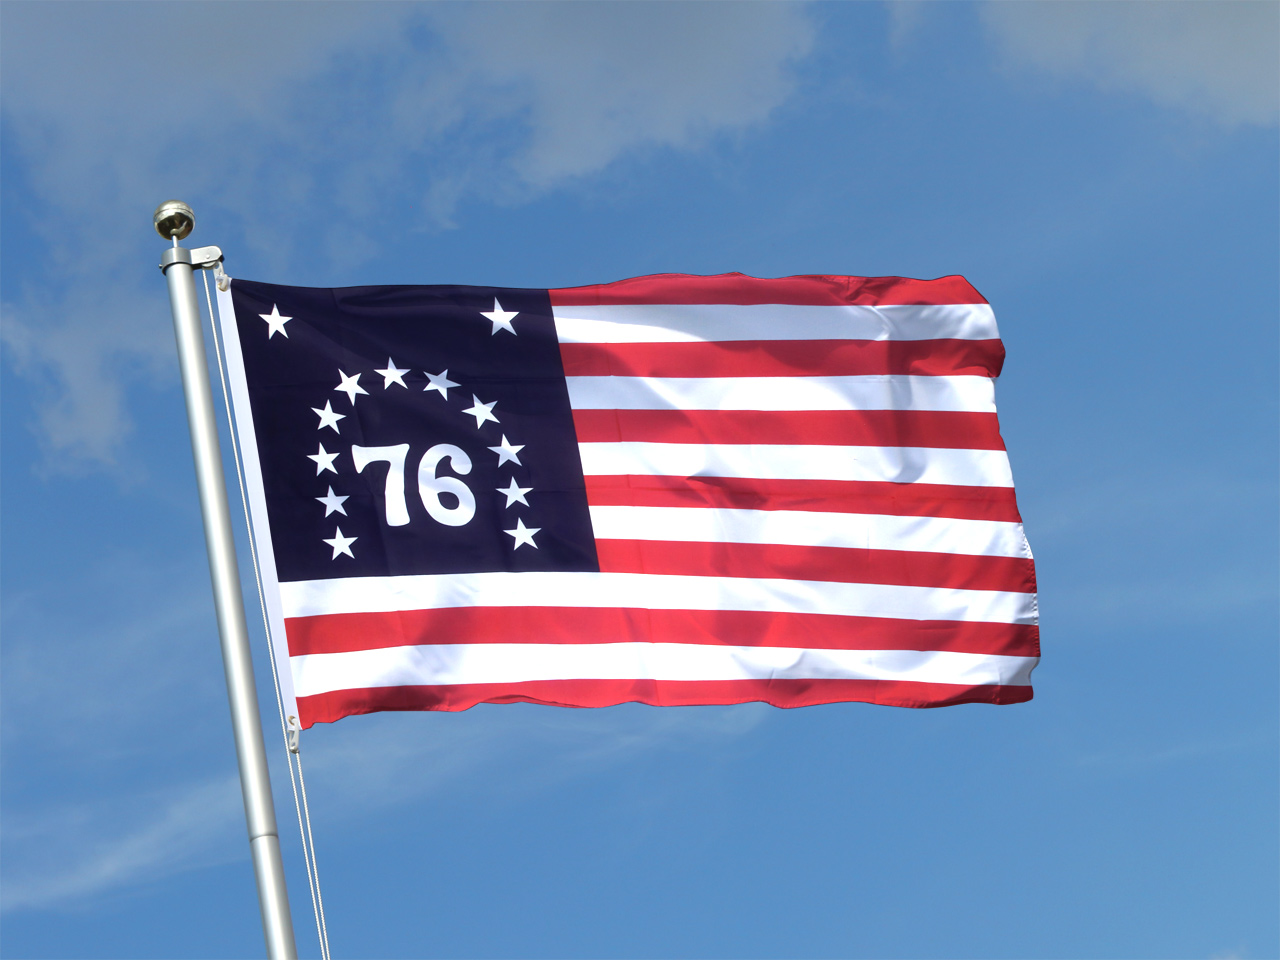 Buy USA Bennington 76 Flag 3x5 ft (90x150 cm) Royal Flags